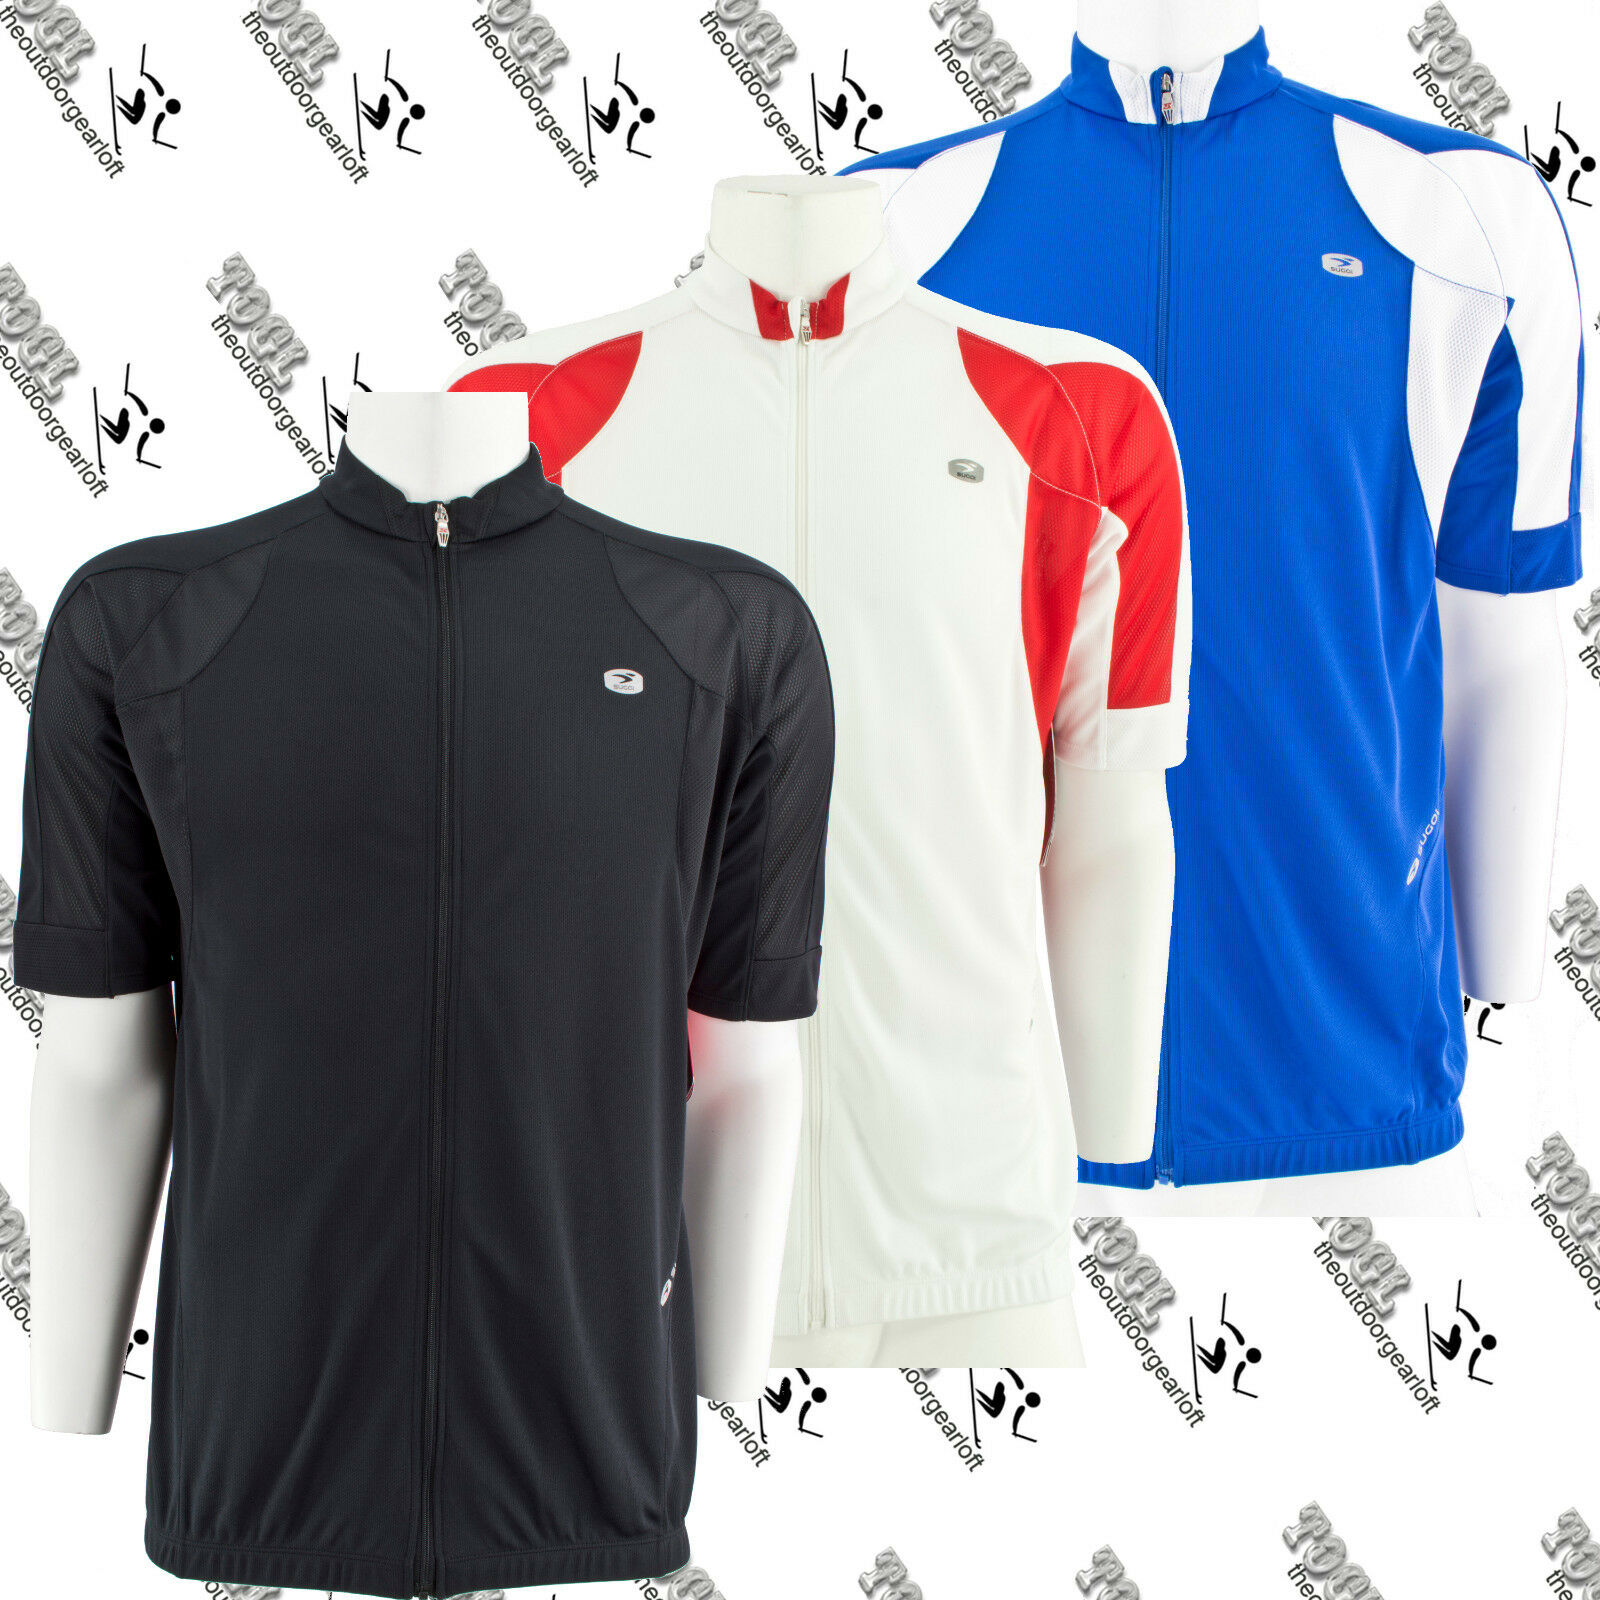 SUGOI GS57766U MENS CYCLING SHORT SLEEVE FULL ZIP EVOLUTION JERSEY LARGE